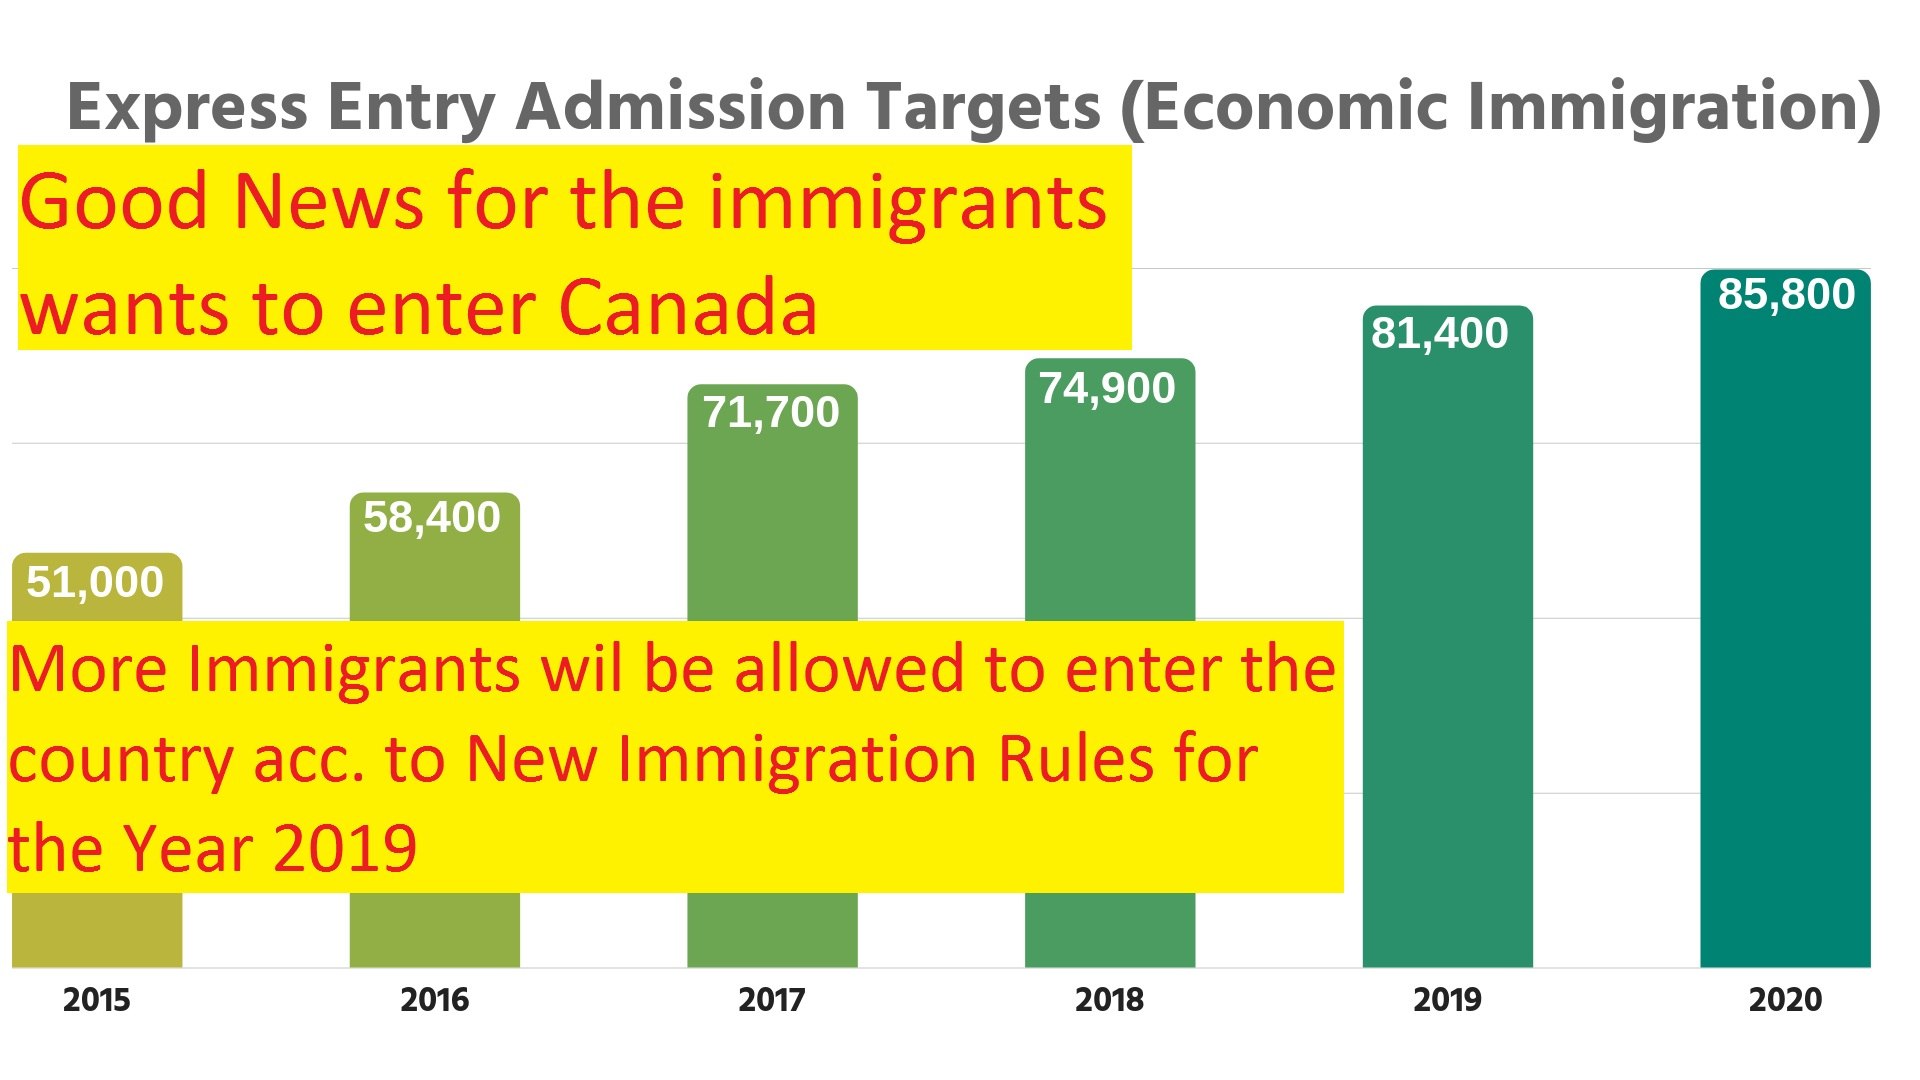 New Immigration Rules for the Year 2019.